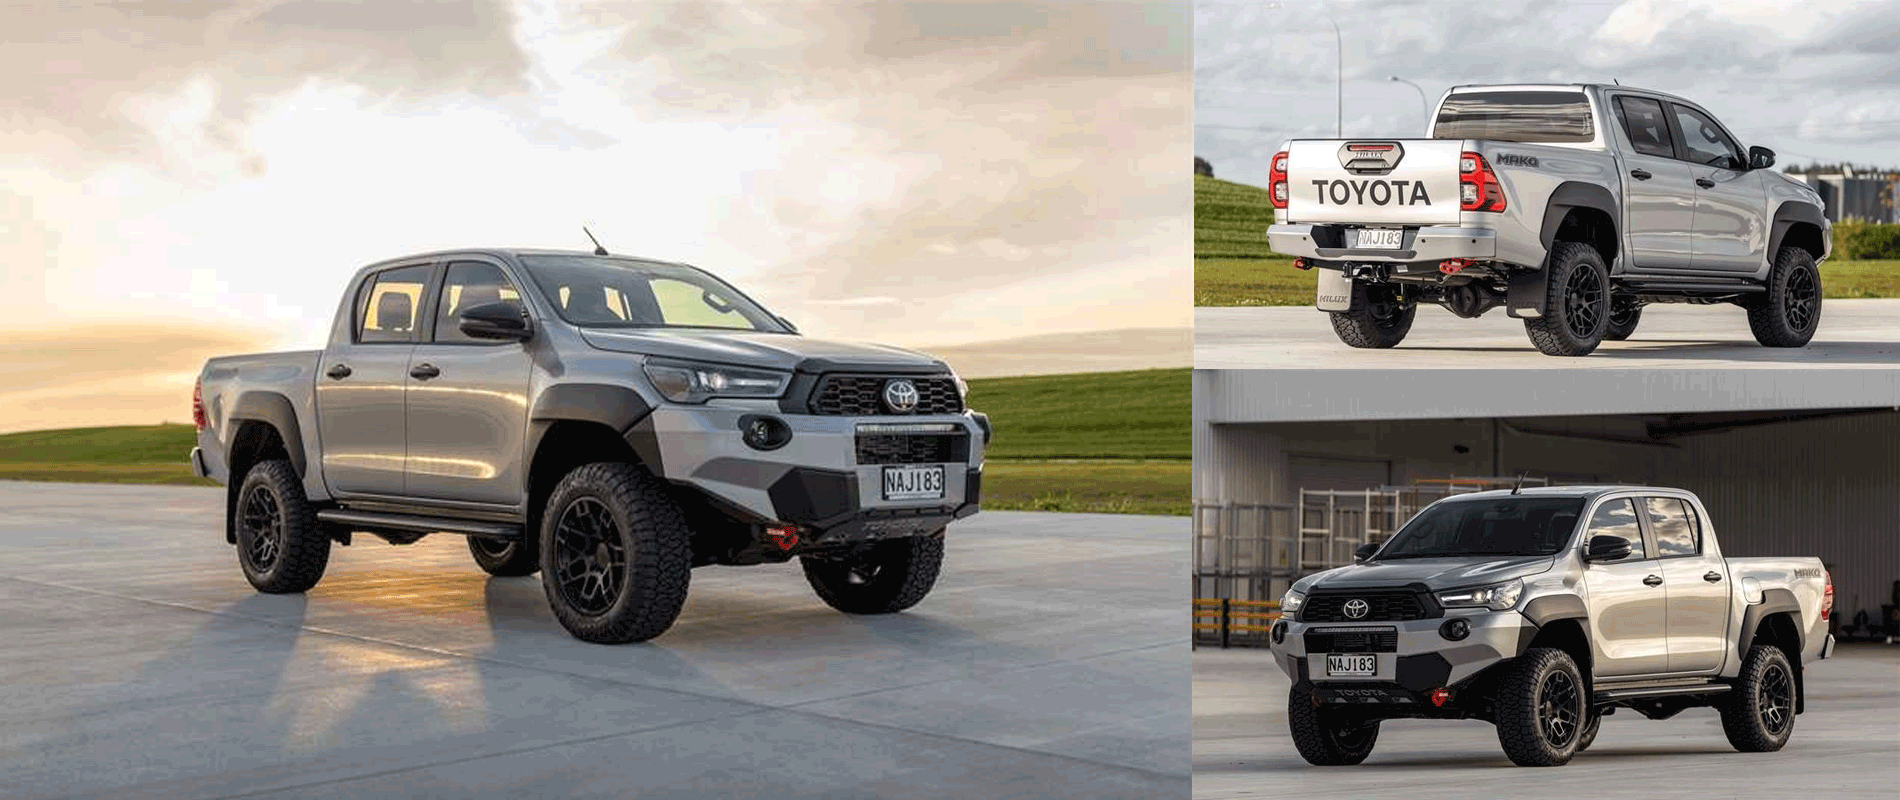 Plenty of Bite in Mako - Richard Bossleman checks out this new offering from Toyota